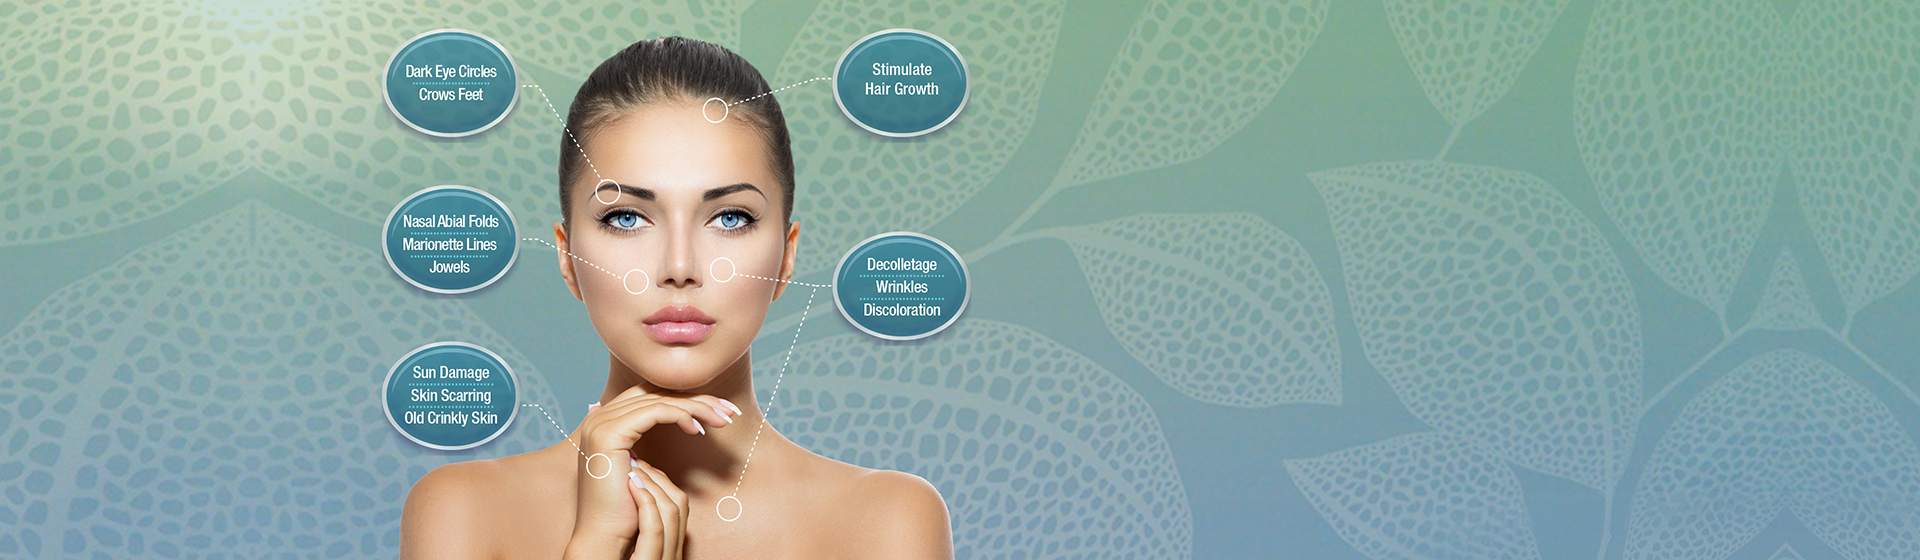 Aesthetic Treatments - Ageless Beauty